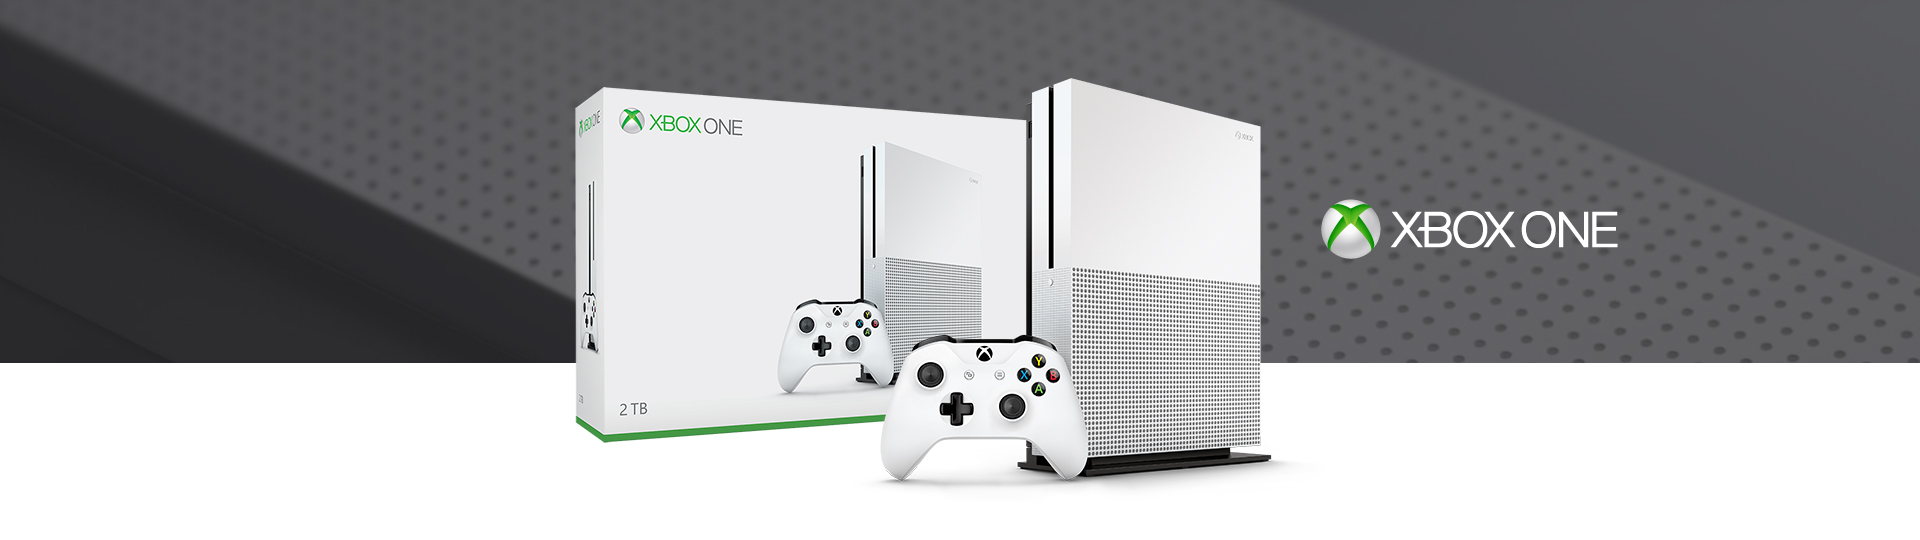 Xbox One S 2TB Edition